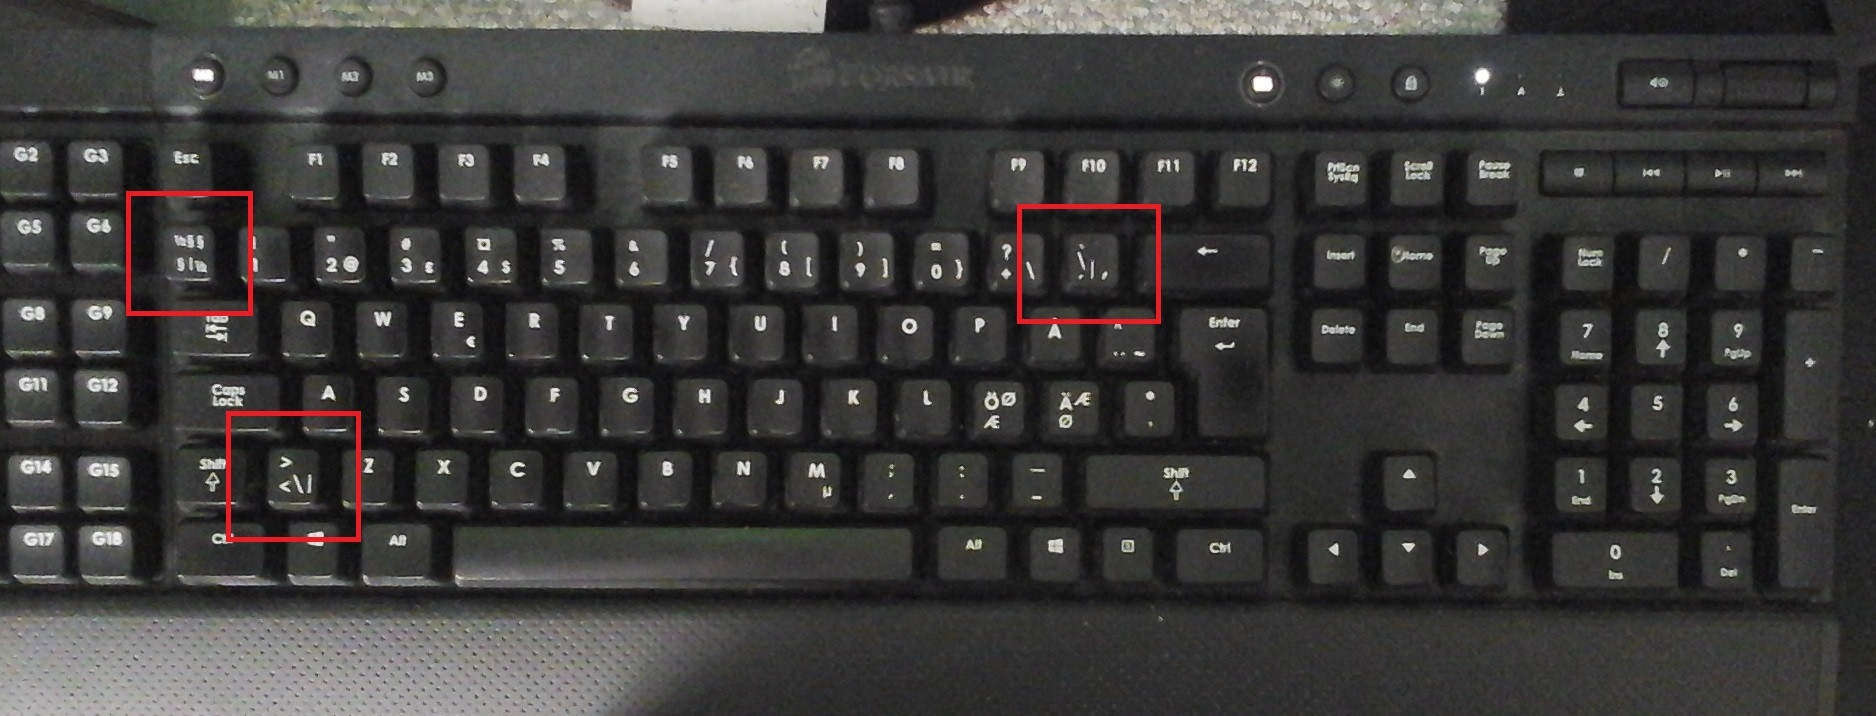 hight resolution of swedish keyboard with pipe symbol highlighted